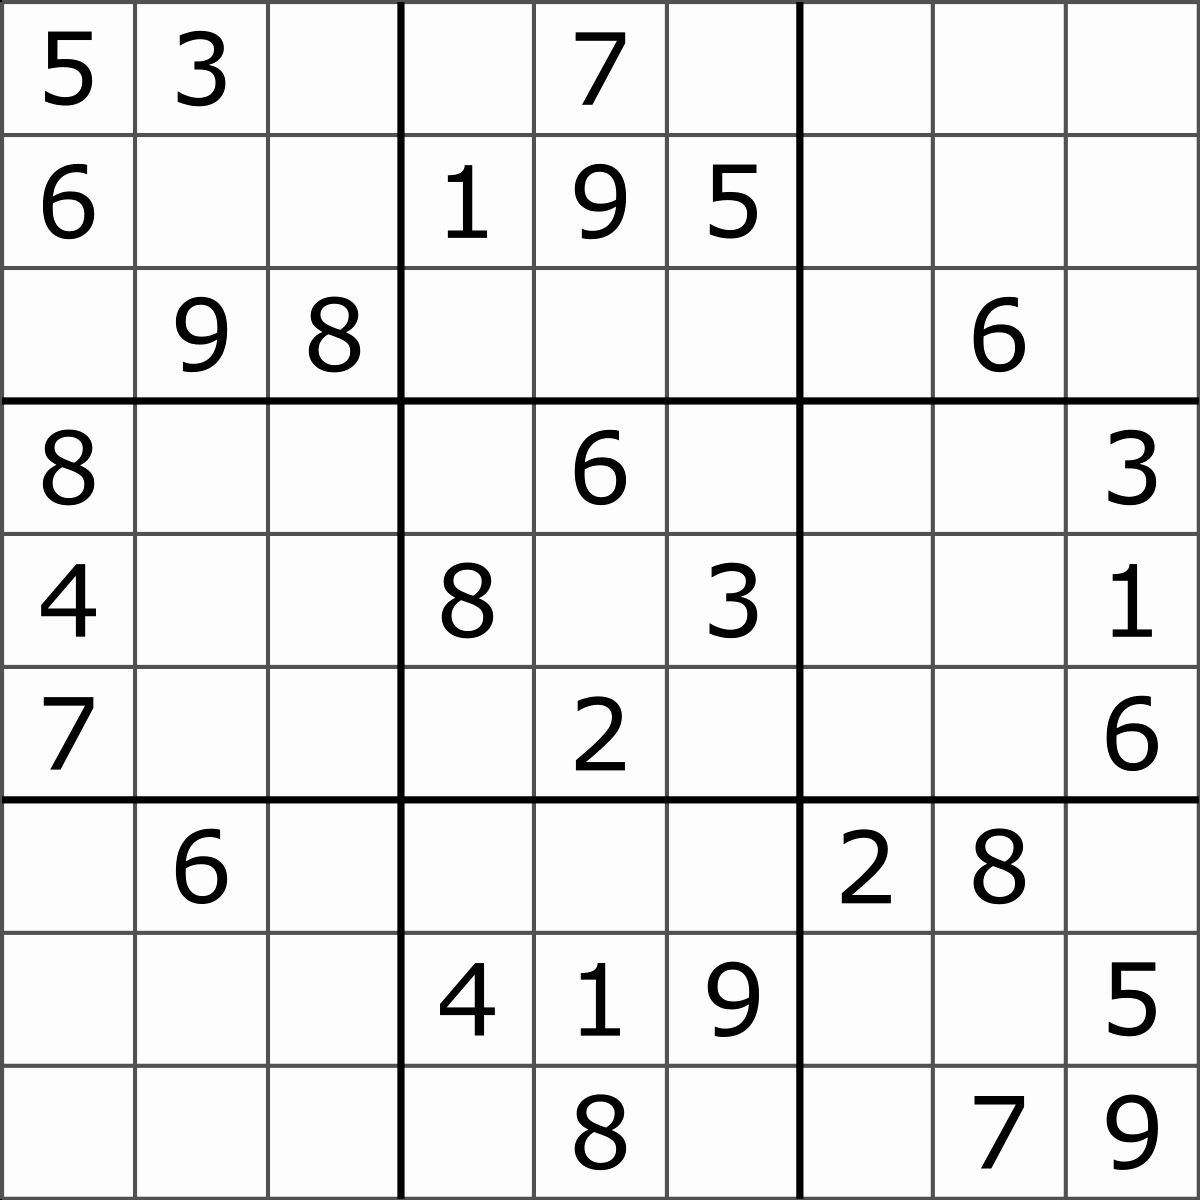 Blank Sudoku Grid Printable New Sudoku